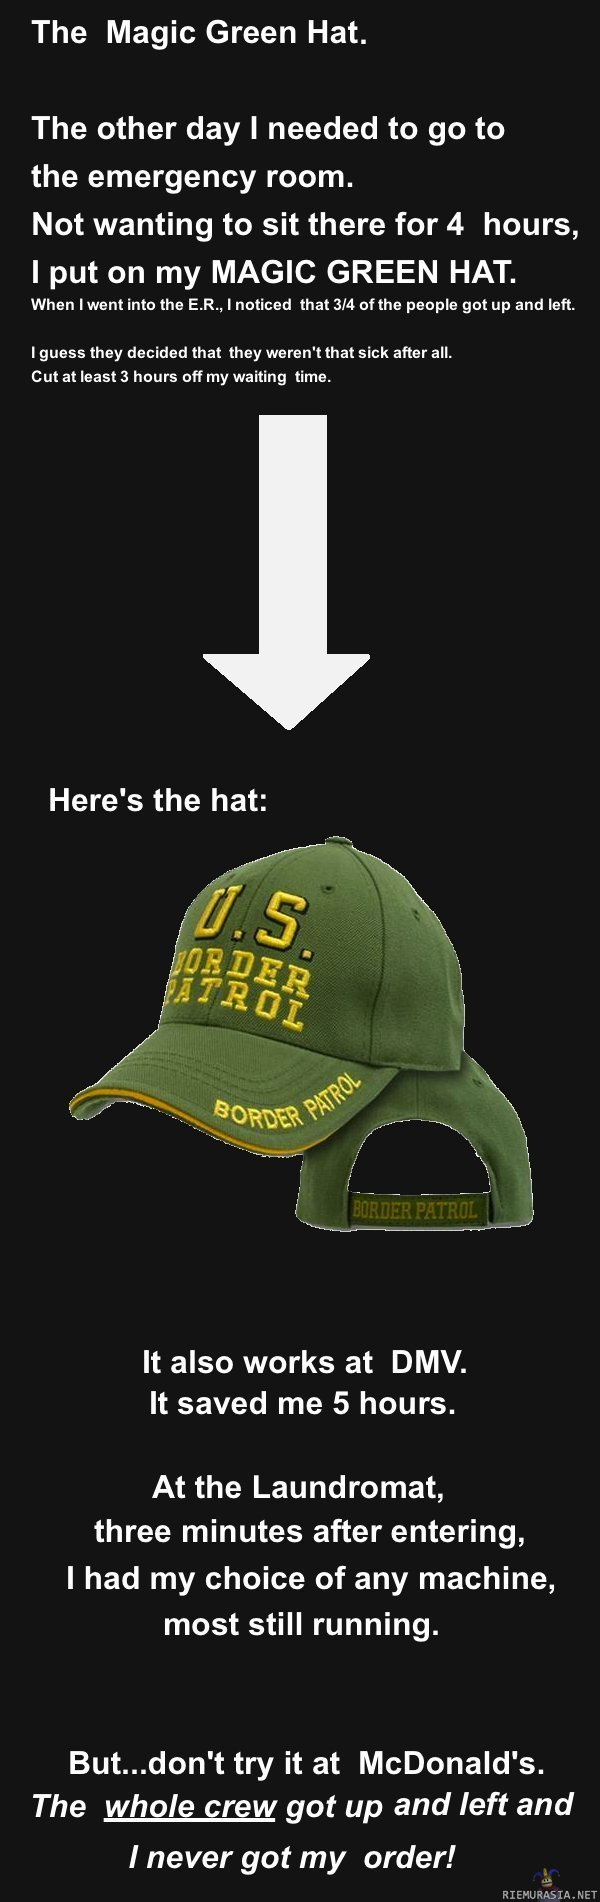 Magic US border patrol hat